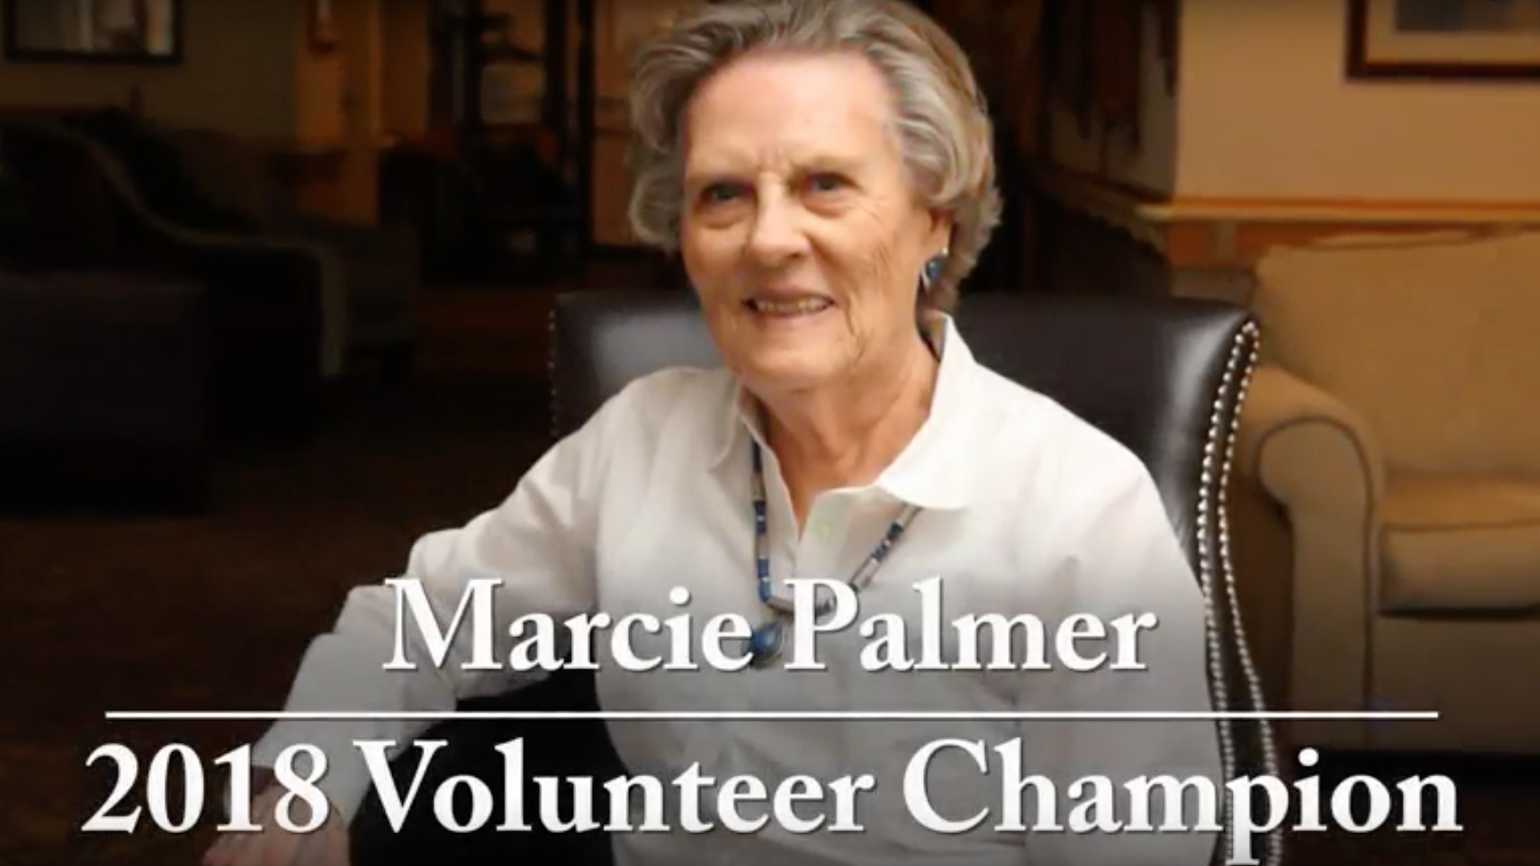 Marcie Palmer 2018 Volunteer Champion